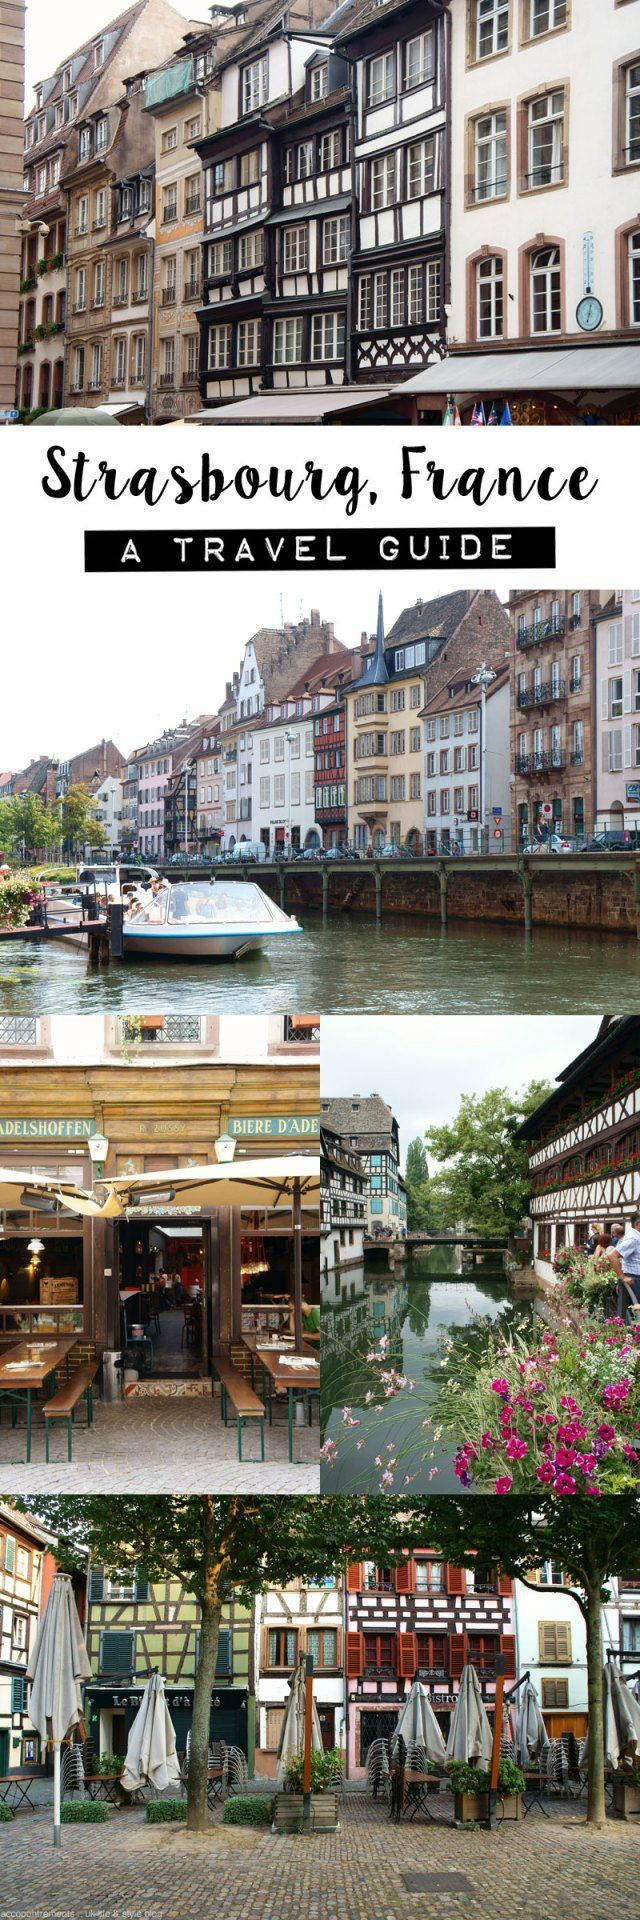 Sometimes we get the urge to go somewhere slightly off the beaten track and our most recent trip saw us visit Strasbourg in France, which we booked on a whim af